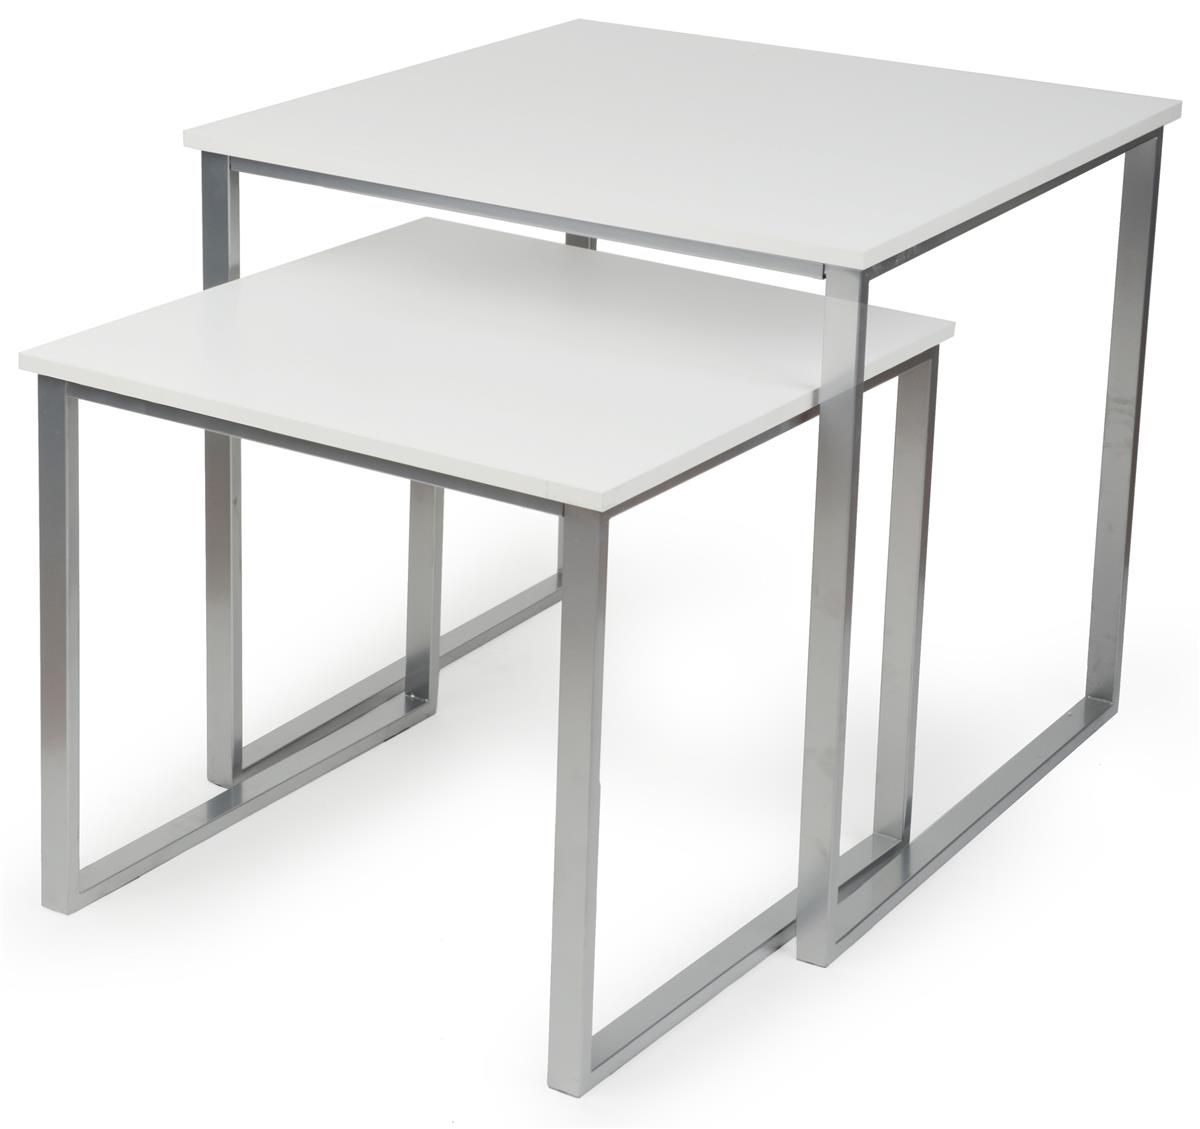 White Nesting Table For Retail Store ~ Retail nesting tables set of square displays